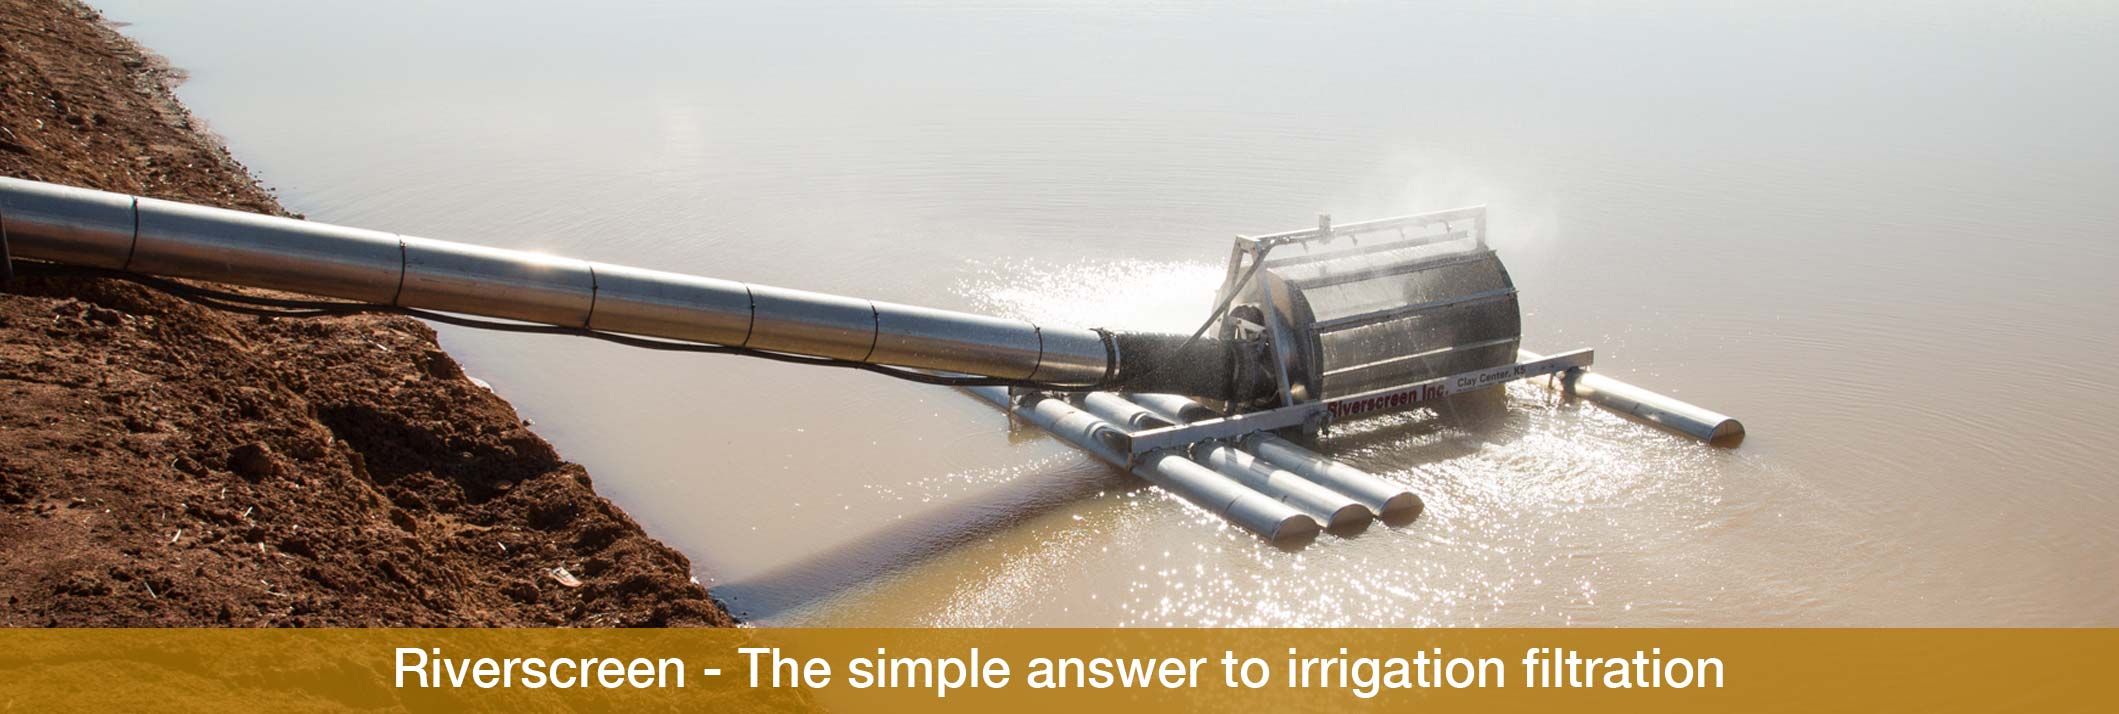 Eagle i farm machinery Riverscreen – The simple answer to irrigation filtration